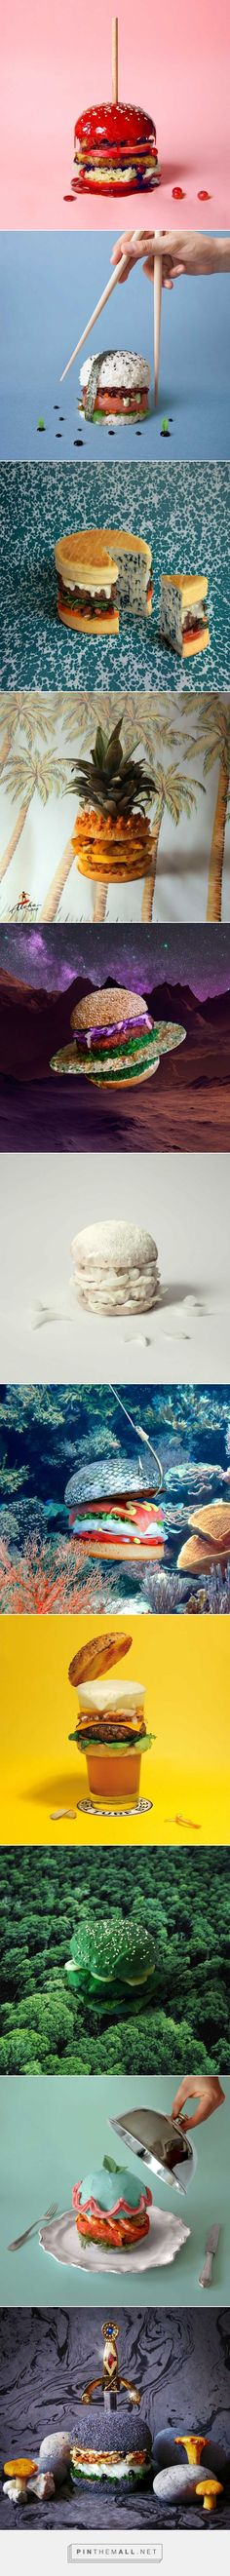 Miss Moss · Fat & Furious Burger is a project by french graphic designers Thomas & Quentin, of Studio Furious, who started putting together elaborate burger ideas during their lunch breaks.(Need To Try Design Studios) Still Life Photography, Food Photography, Food Design, Design Art, Anuncio Perfume, Photo Food, Miss Moss, E Mc2, Creative Food